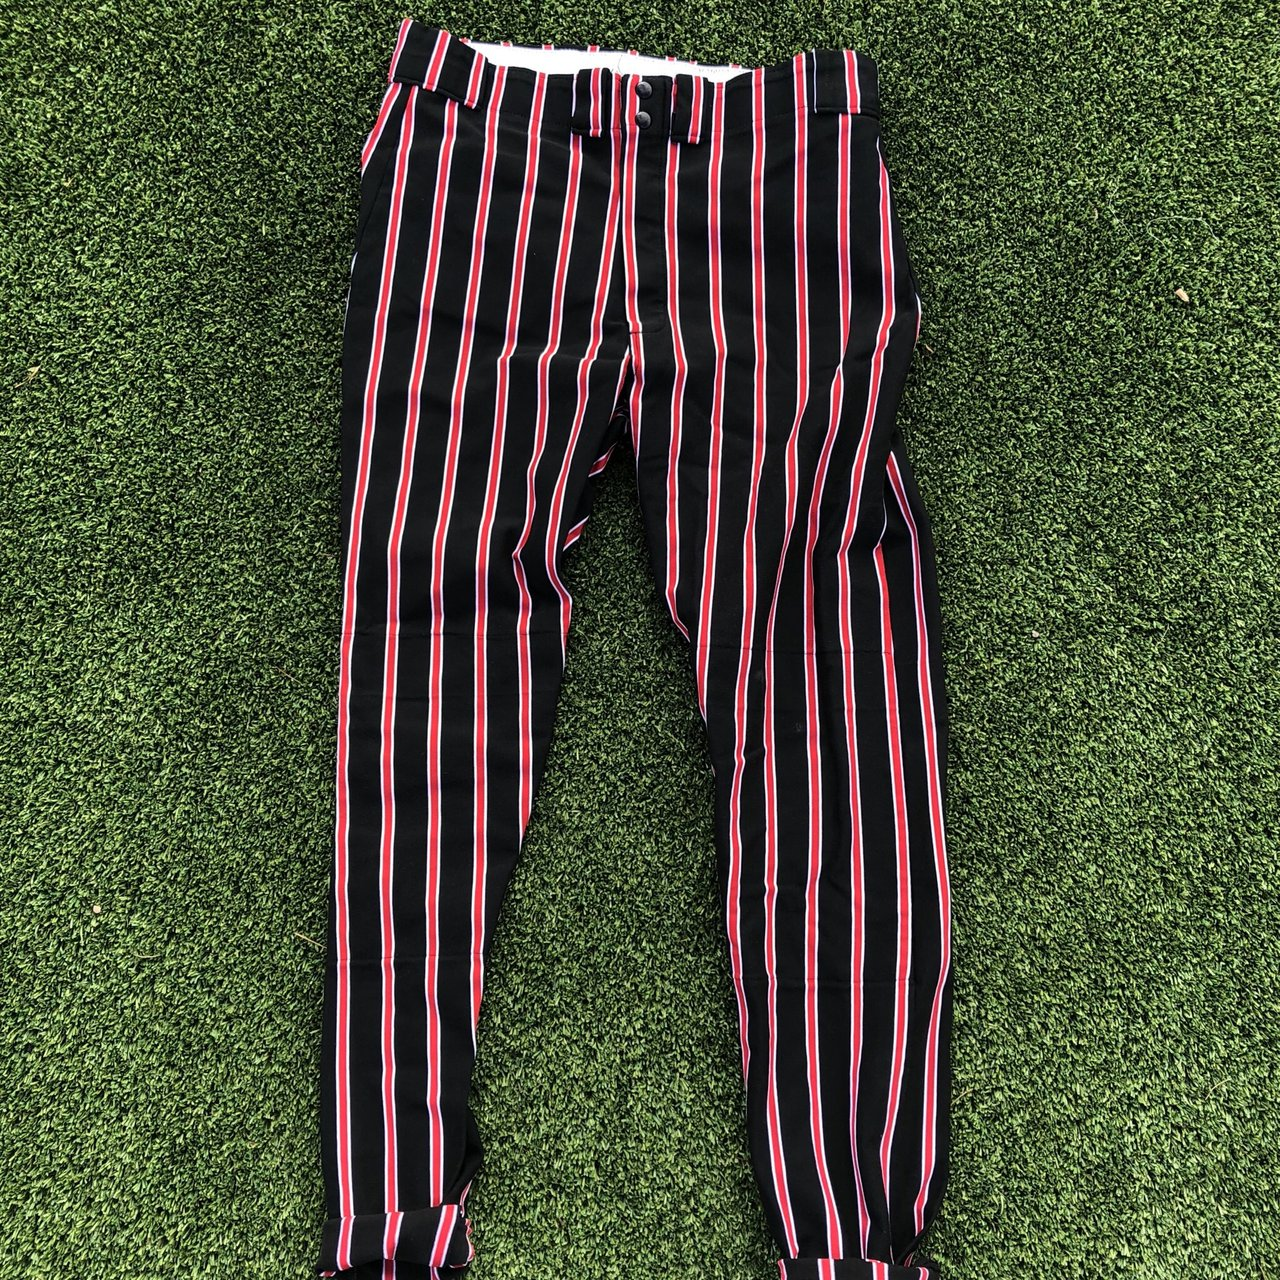 STRIPED RED AND BLACK BASEBALL PANTS personally I m a very I - Depop 53ff01f9dfb7